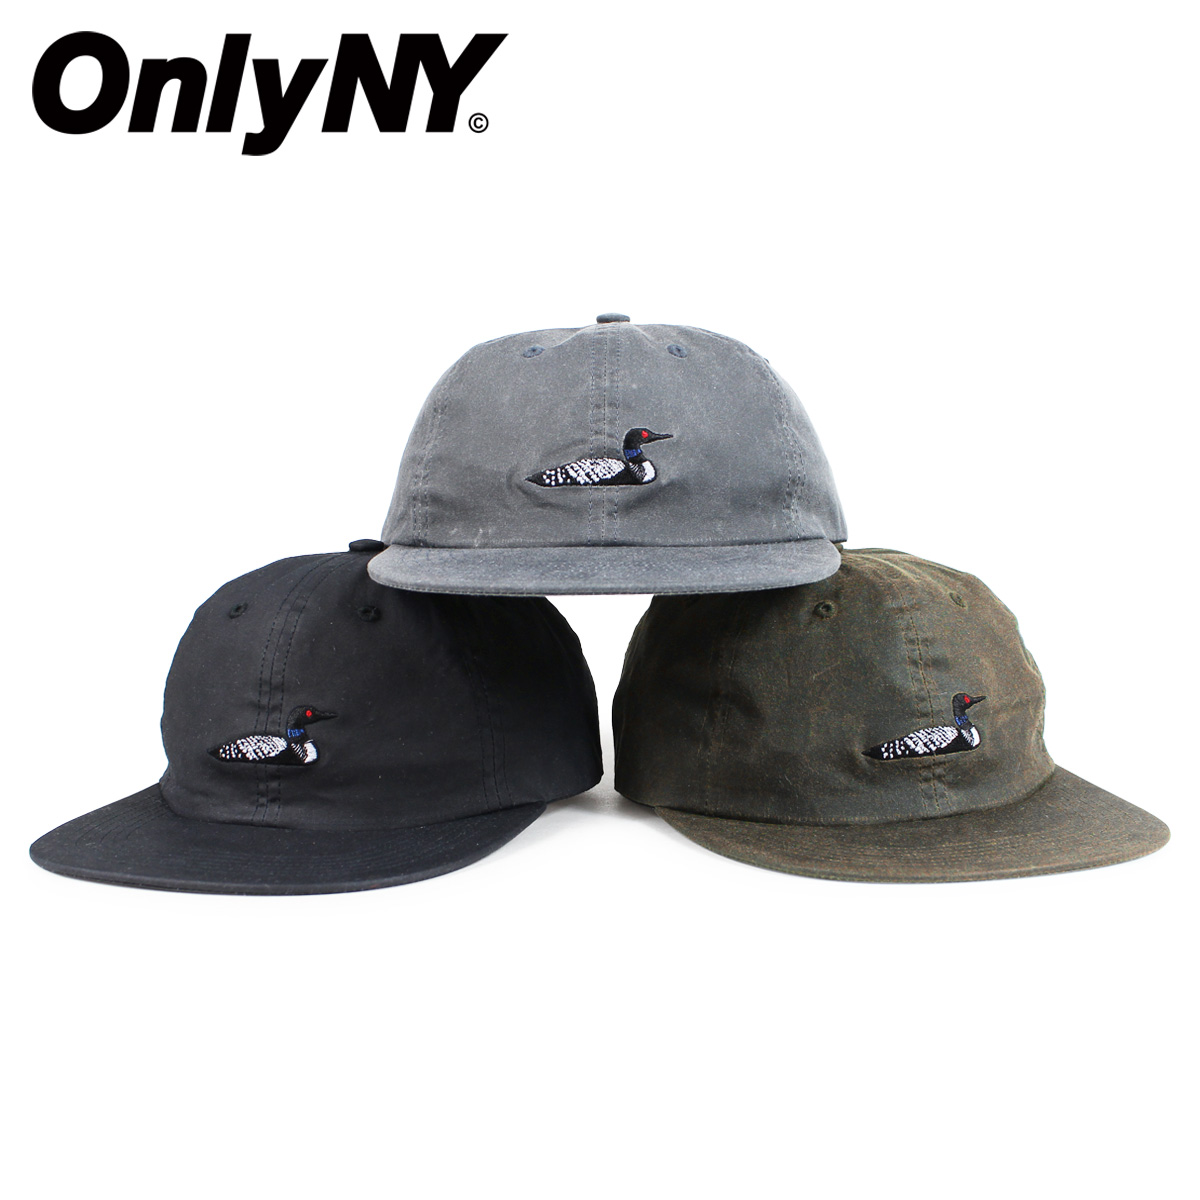 8f7c34a89e0 Only New York ONLY NY cap hat men gap Dis snapback cotton LOON POLO HAT  black ...